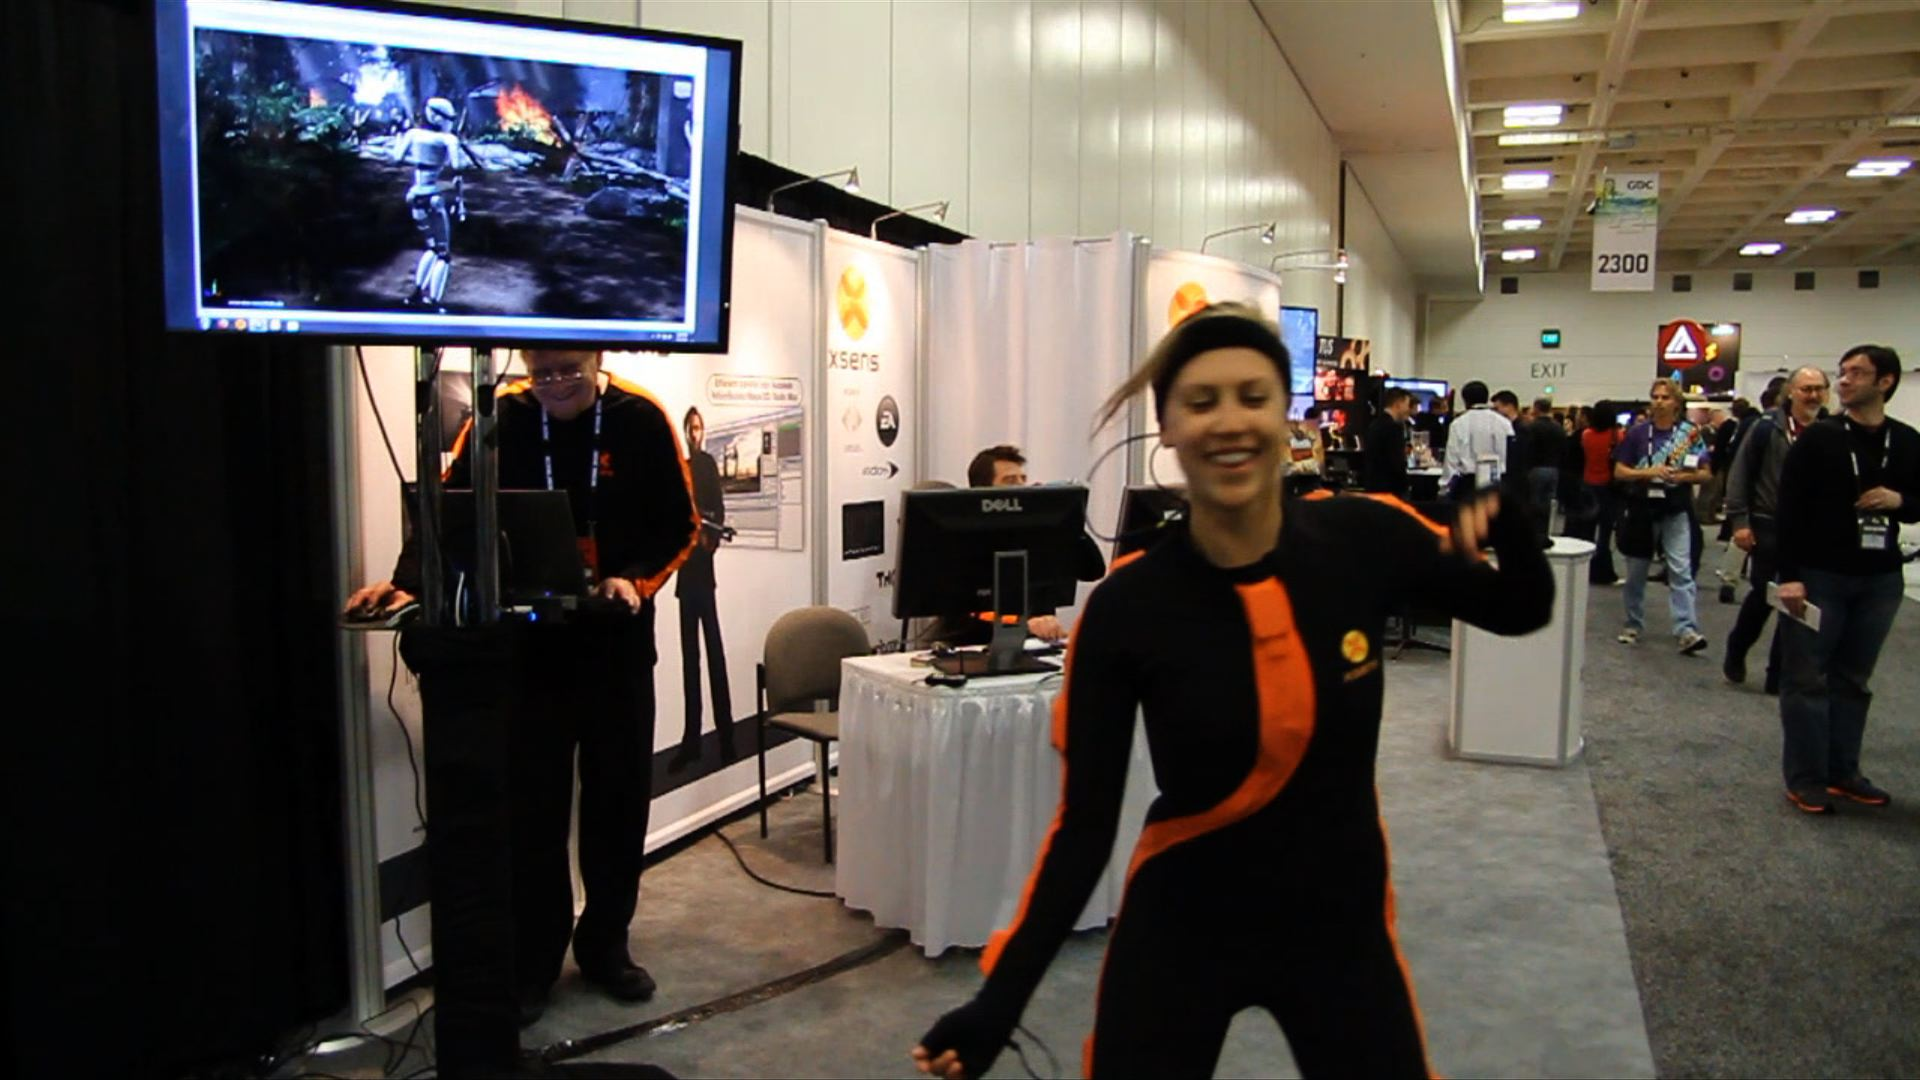 Giggle With Us Now At These Goofy Motion-Capture Demonstrations